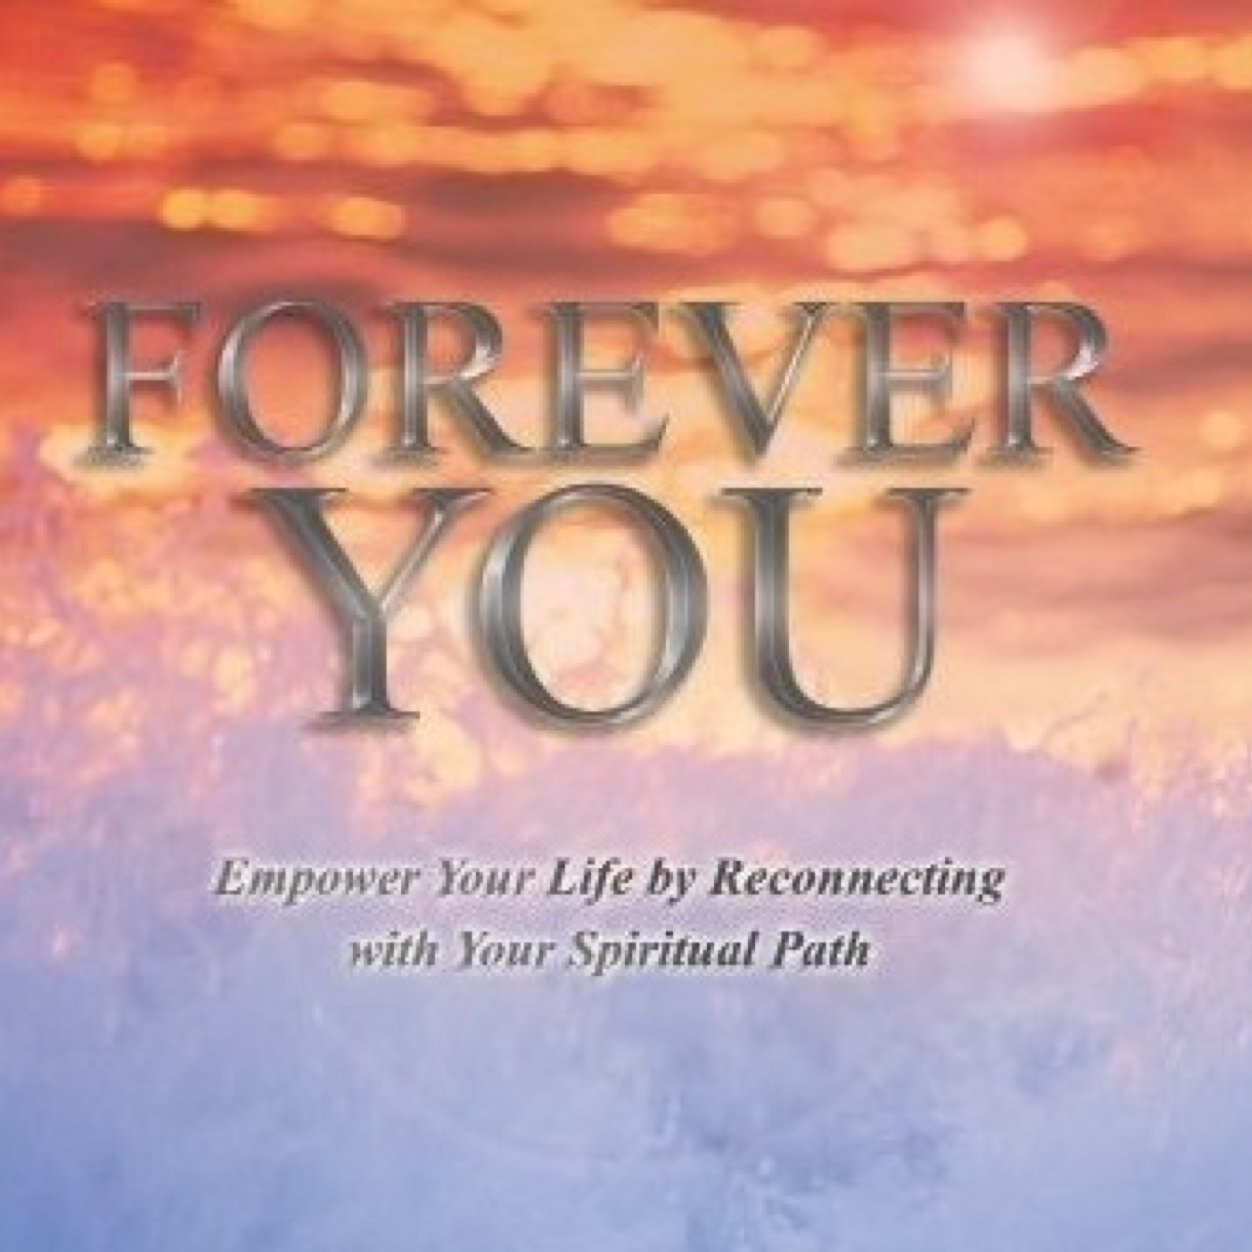 You- Forever You Author Readforeveryou Twitter